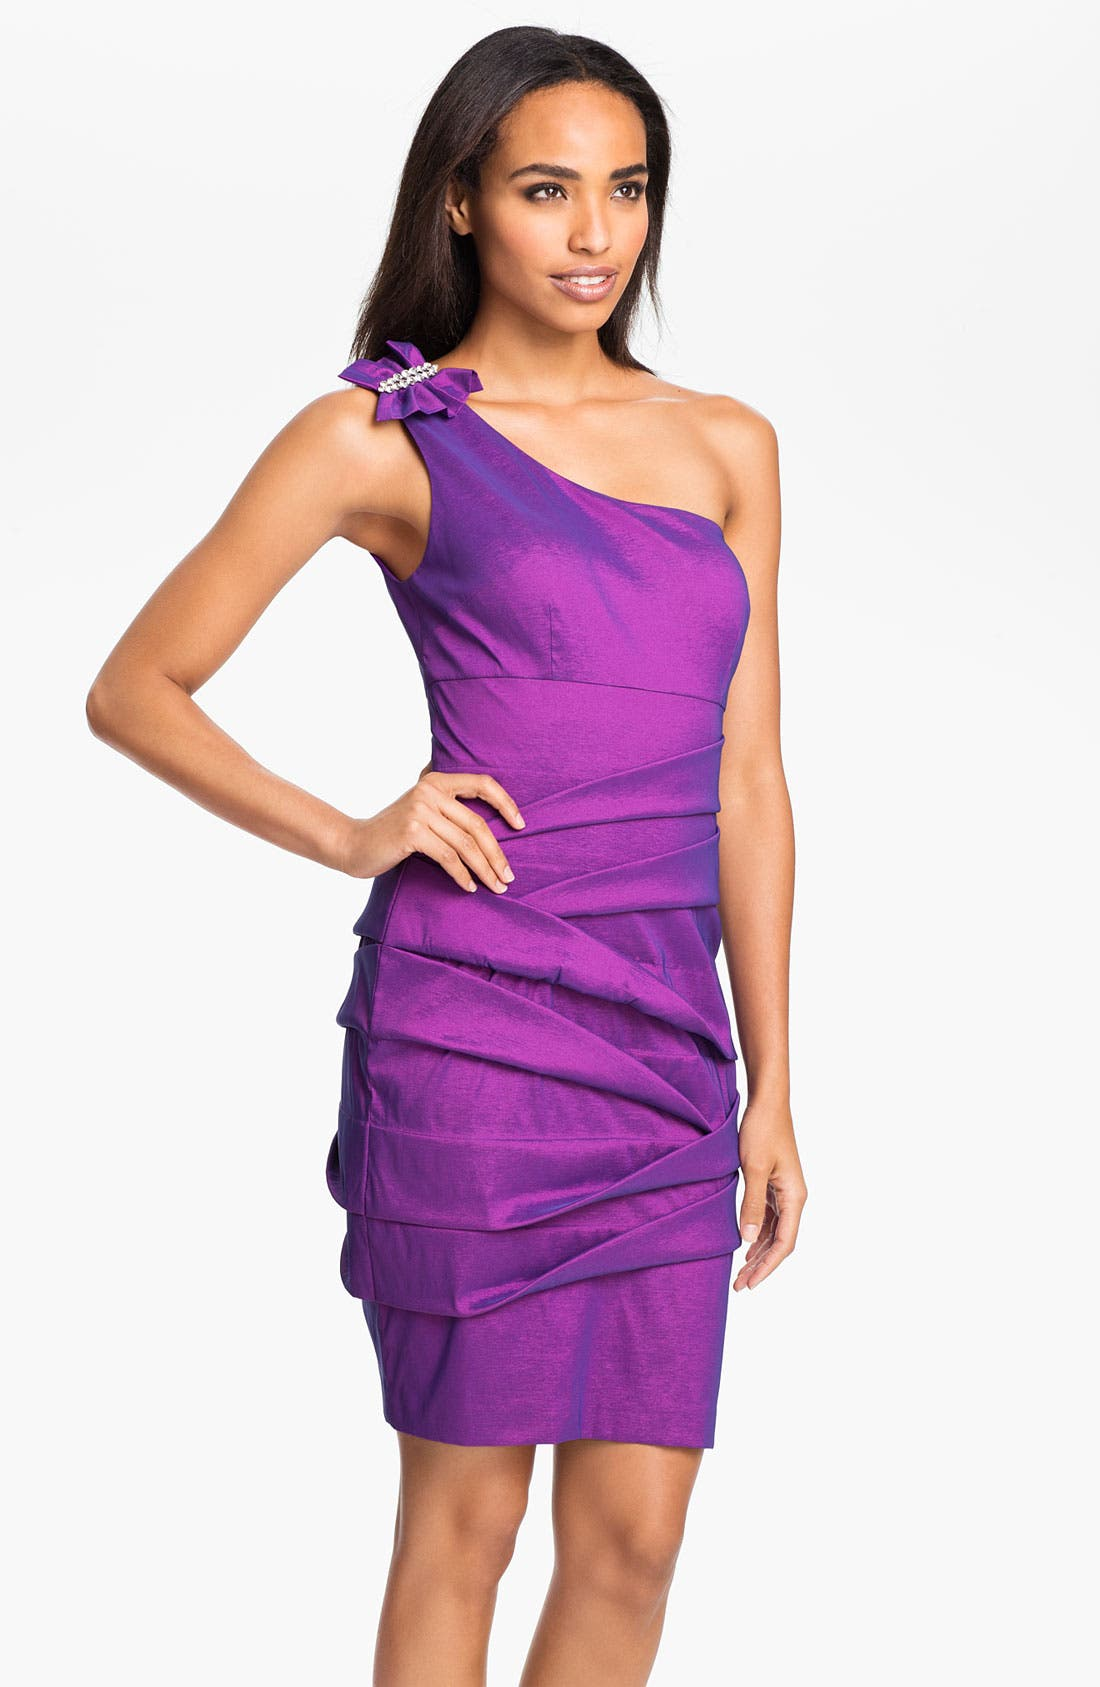 Alternate Image 1 Selected - Hailey by Adrianna Papell One Shoulder Foldover Taffeta Sheath Dress